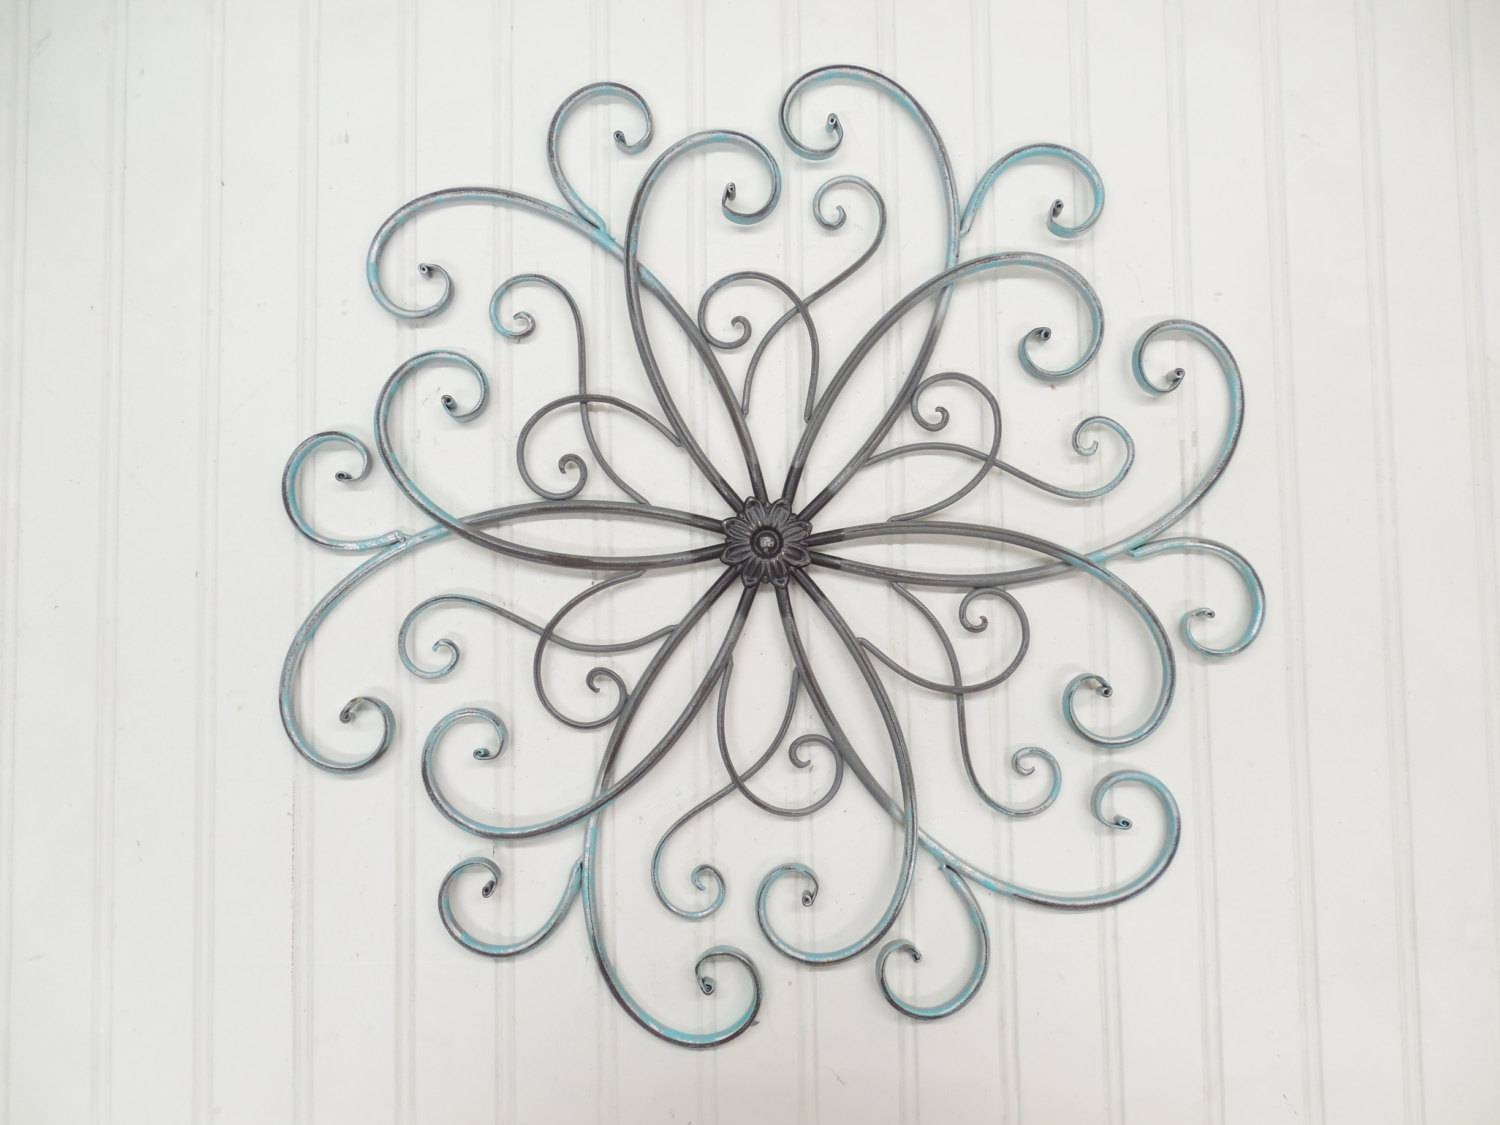 Tips & Ideas: Faux Wrought Iron Wall Art With Wood Panels For With Most Up To Date Faux Wrought Iron Wall Art (View 4 of 30)